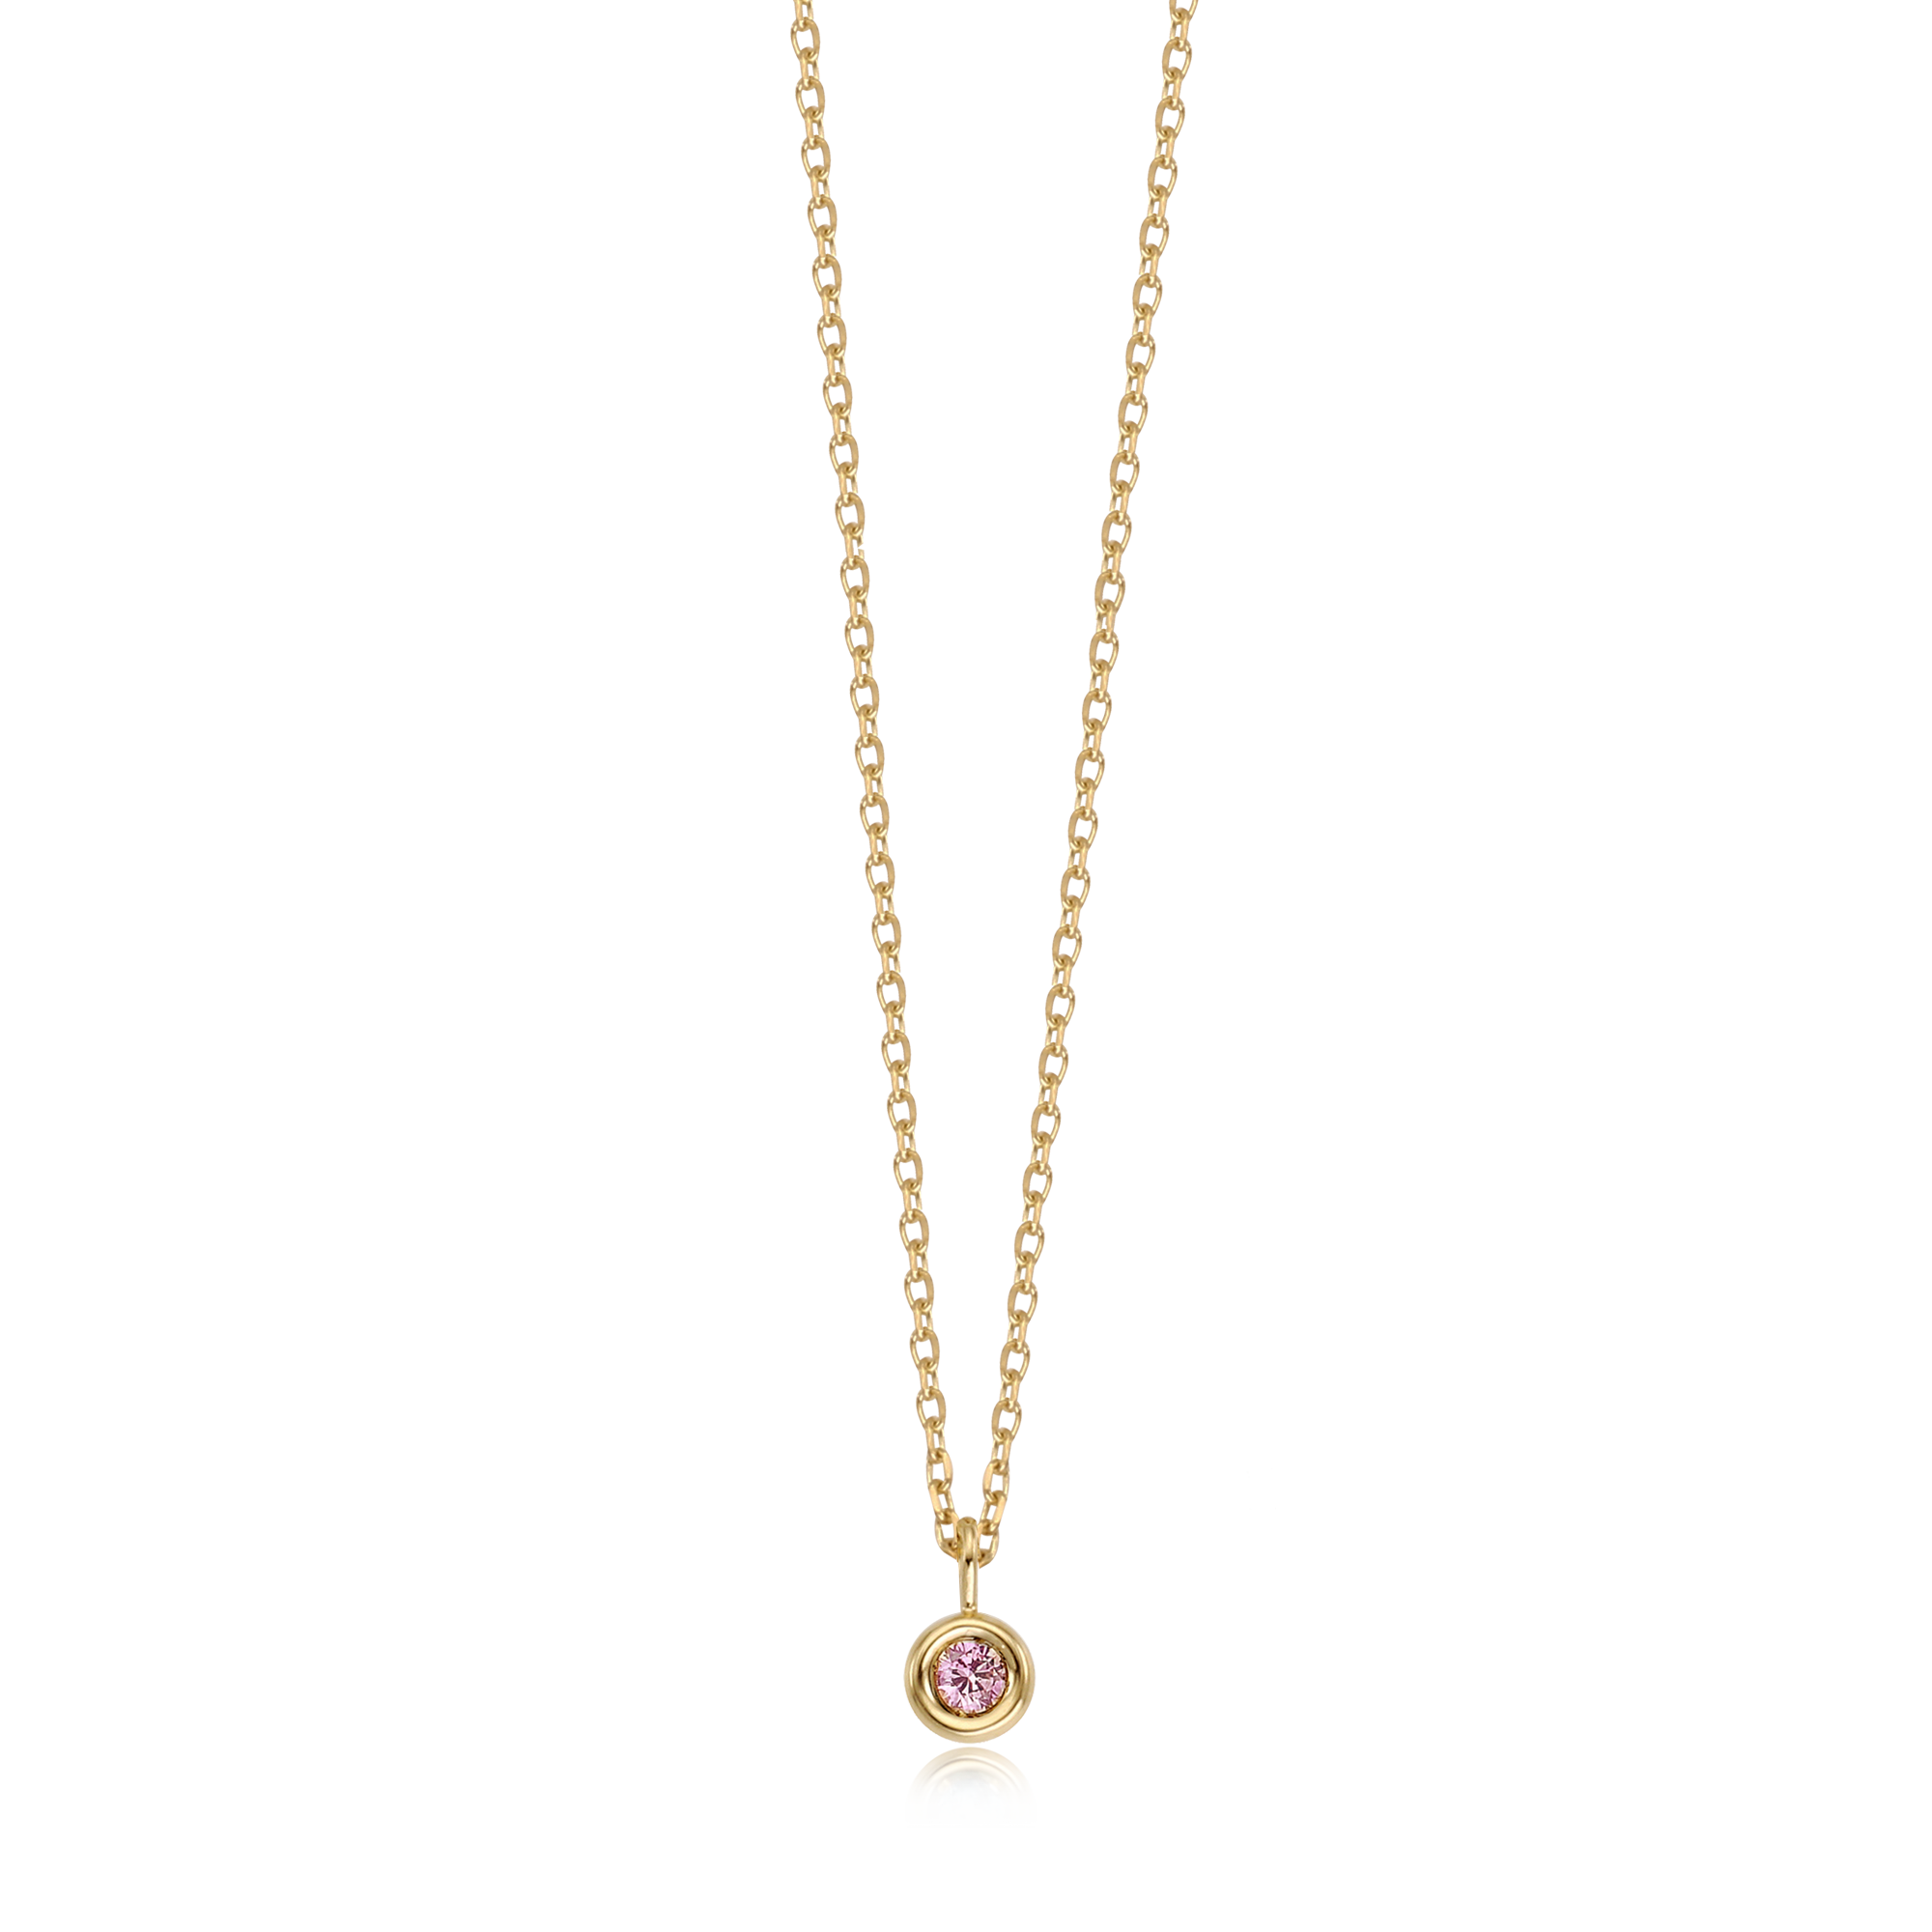 14k Gold October Pink Tourmaline Birthstone Necklace